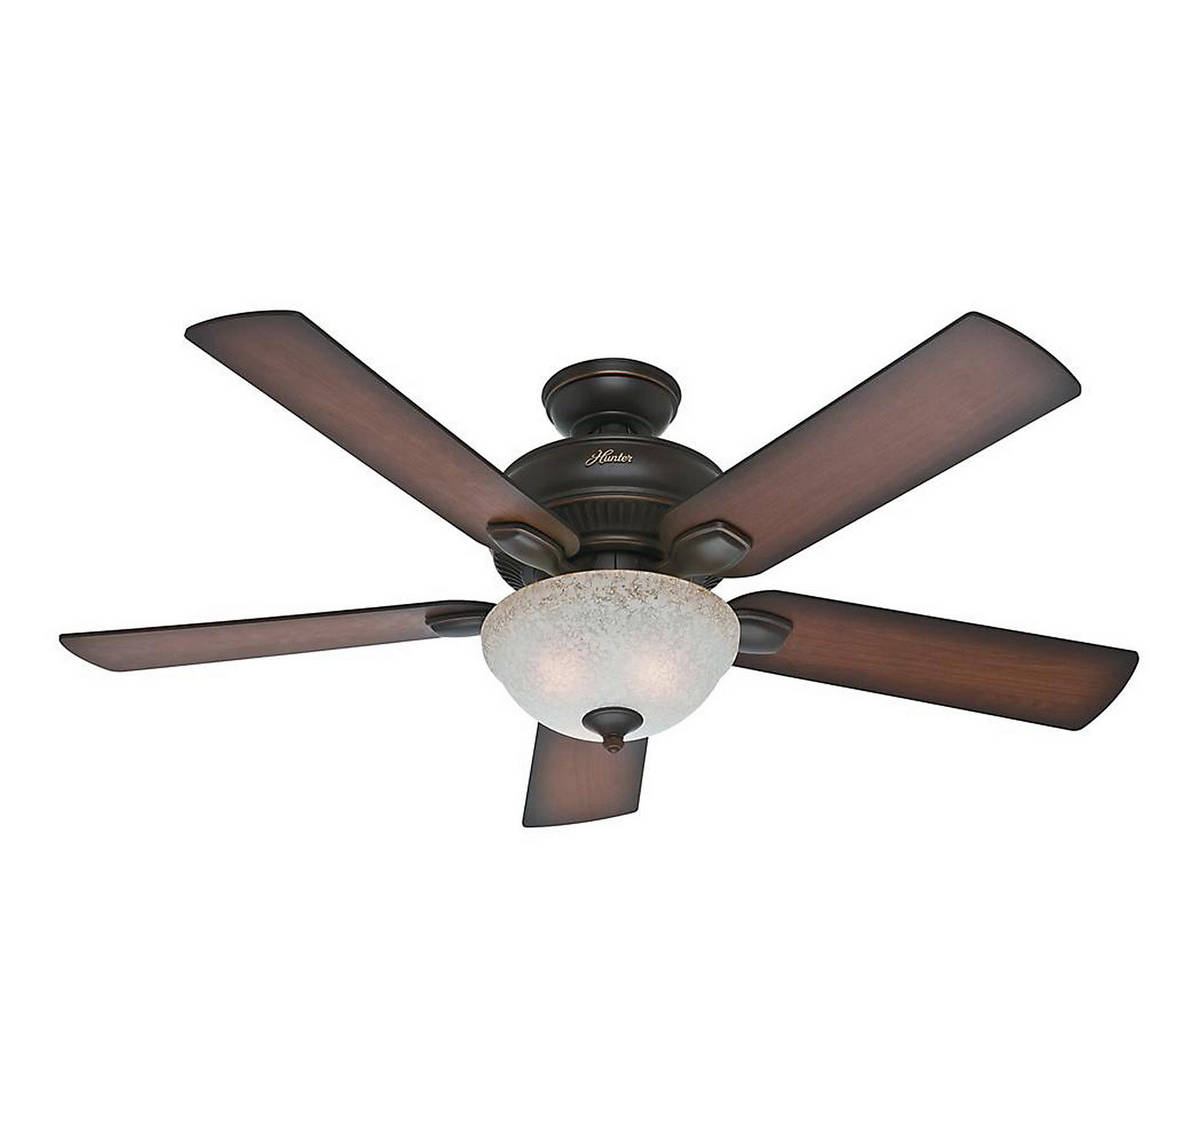 Hunter Matheston 52 Outdoor Ceiling Fan in Onyx Bengal